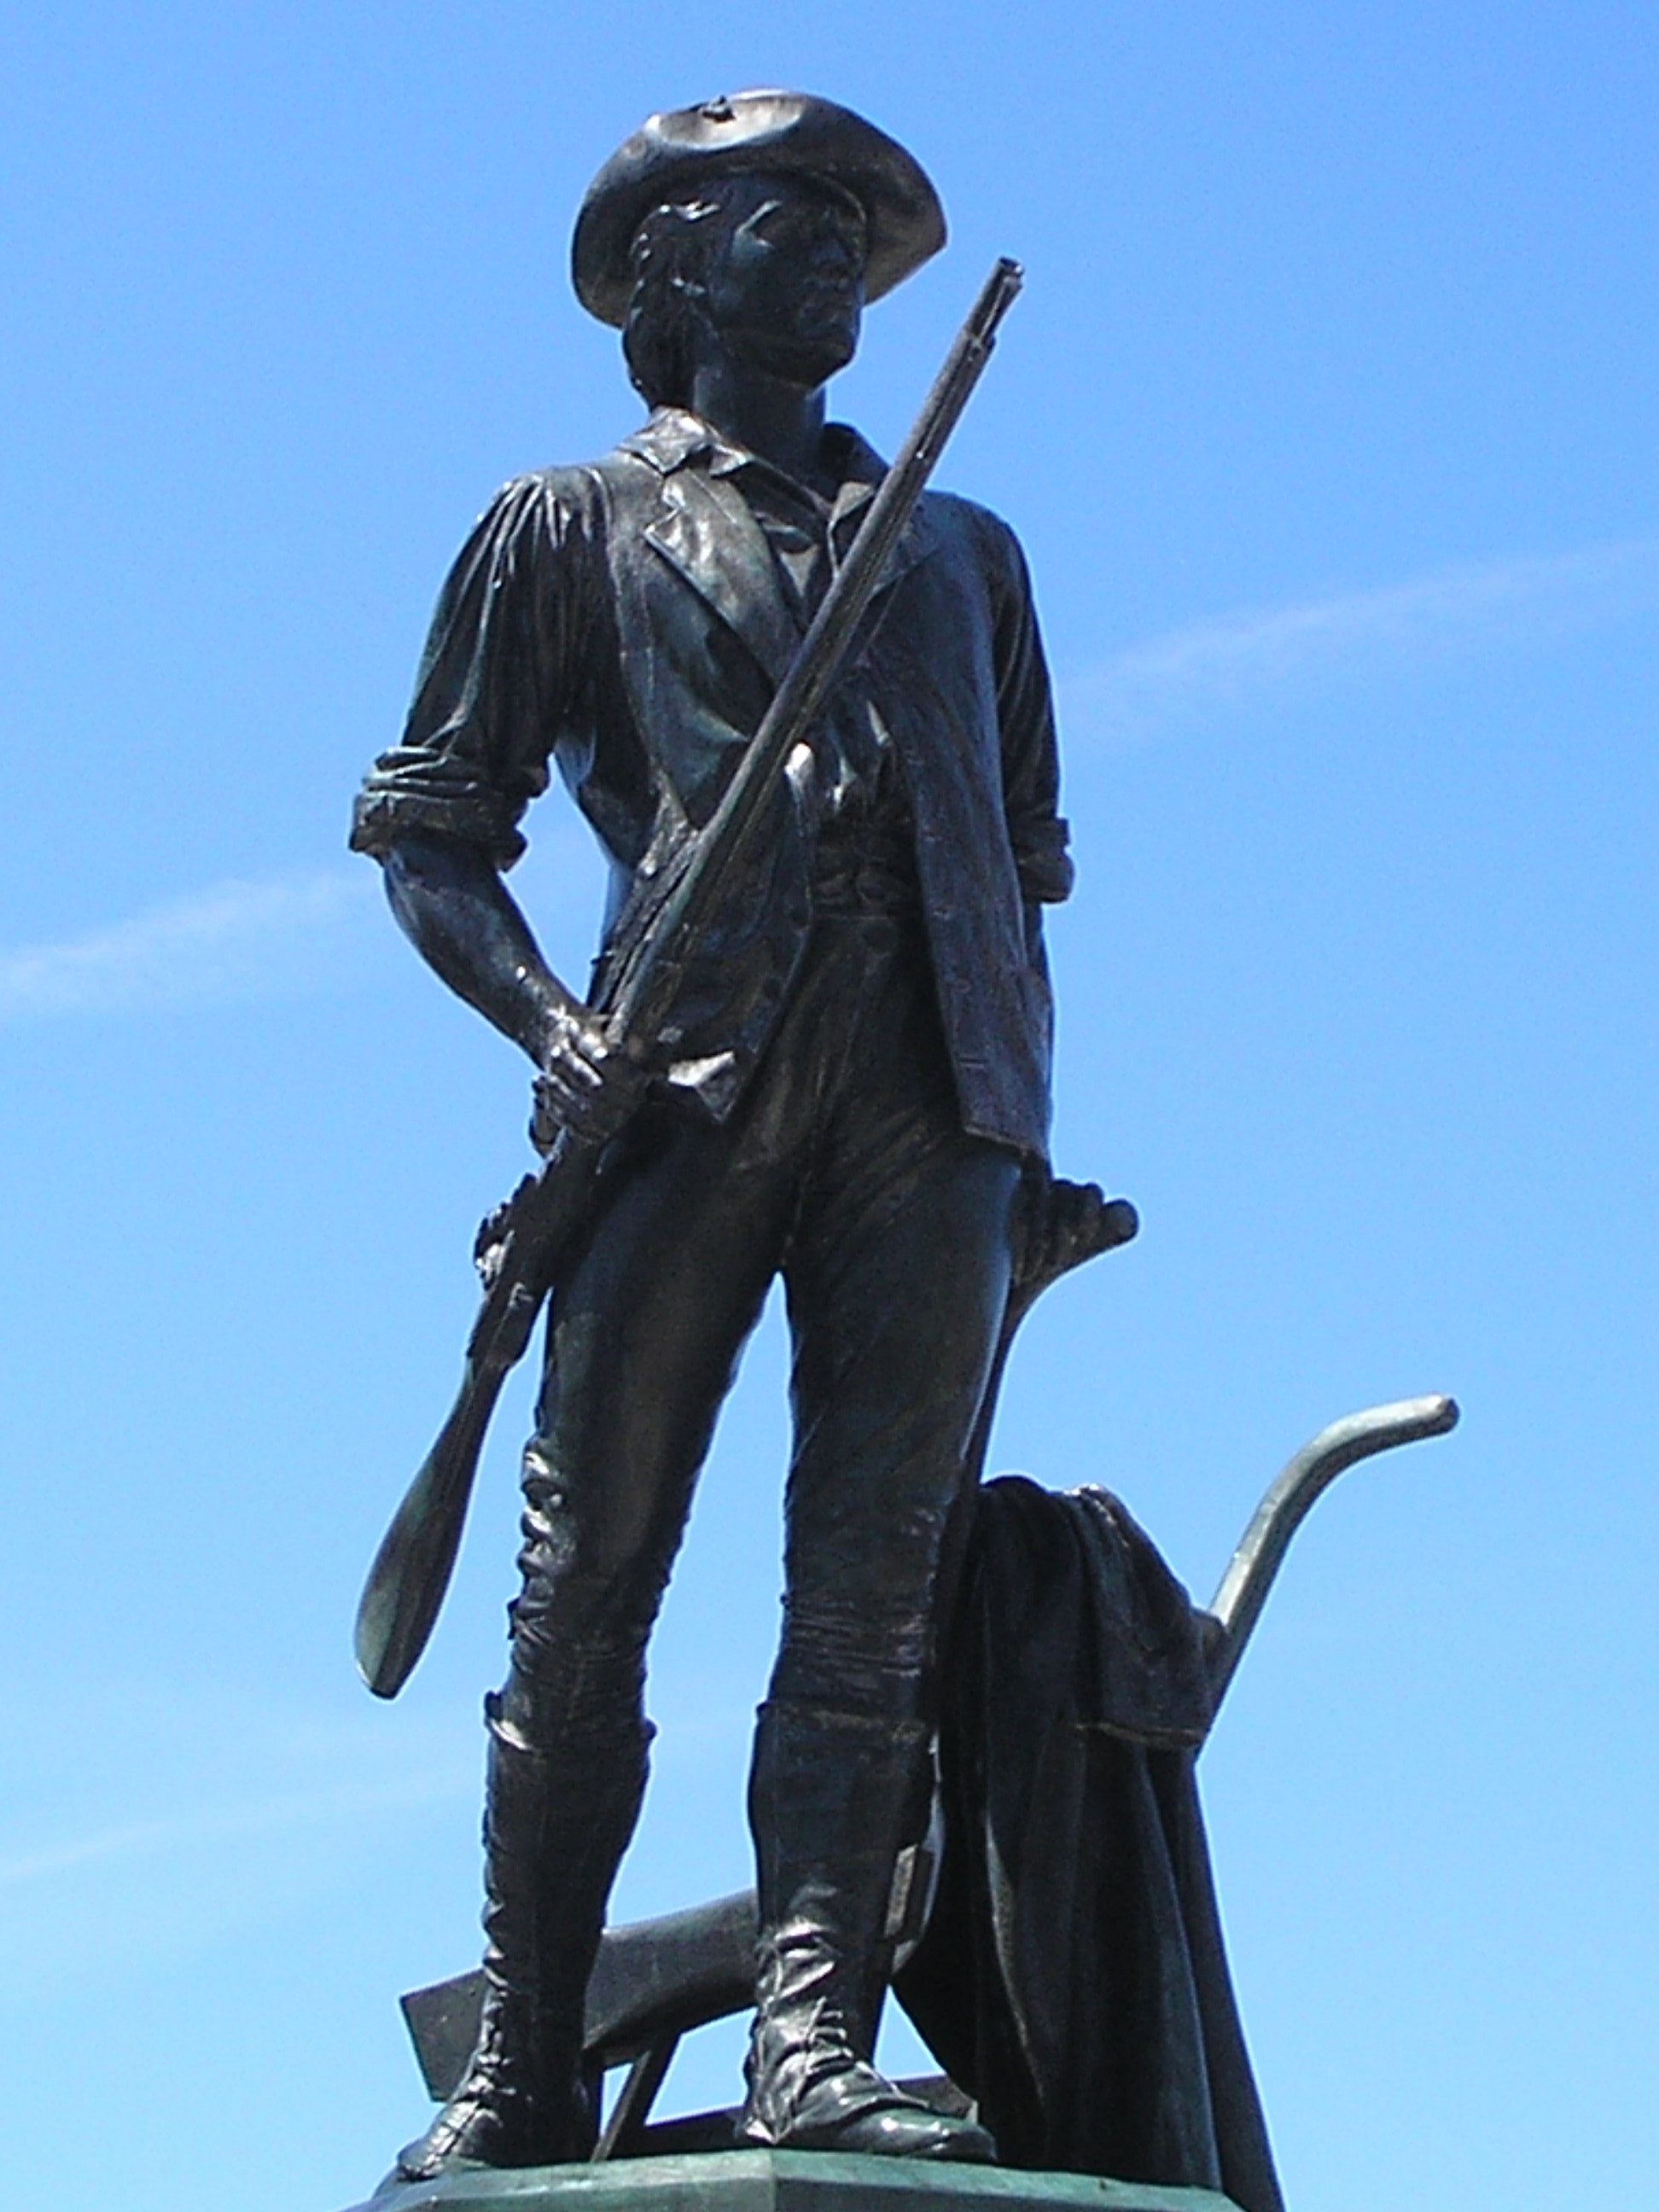 Closeup of the Minuteman Statue